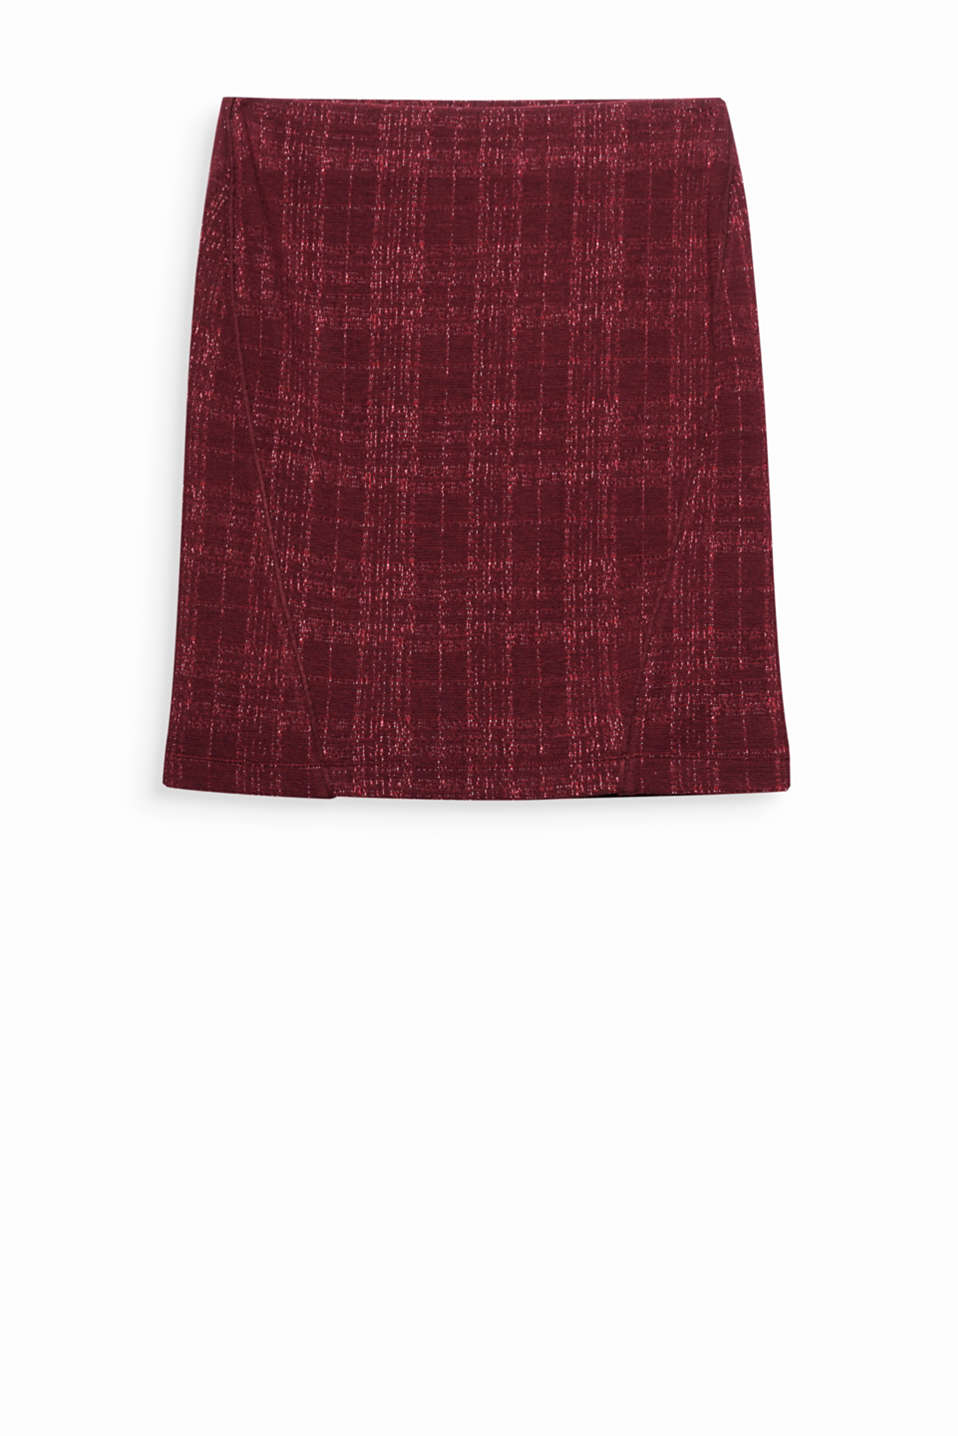 Stretch jersey pencil skirt with a chic, textured check pattern and concealed, elasticated waistband